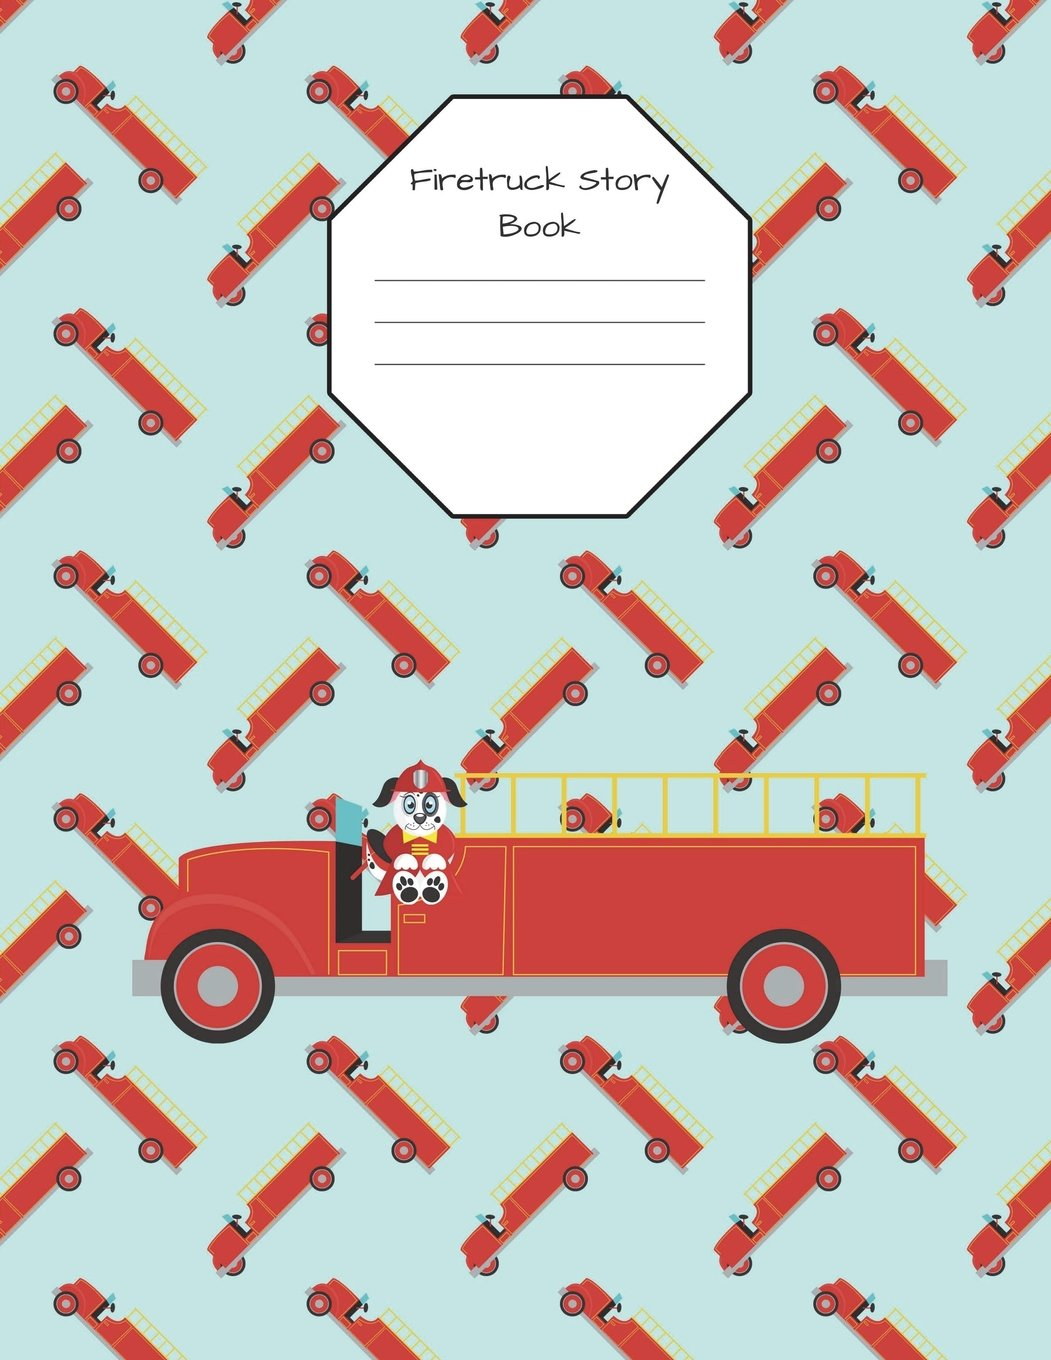 Read Online Firetruck Story Book Primary Journal Composition Notebook: 100 Pages 8.5 x 11 Draw and Write Early Childhood to K Grade Level K-2 Creative Picture PDF